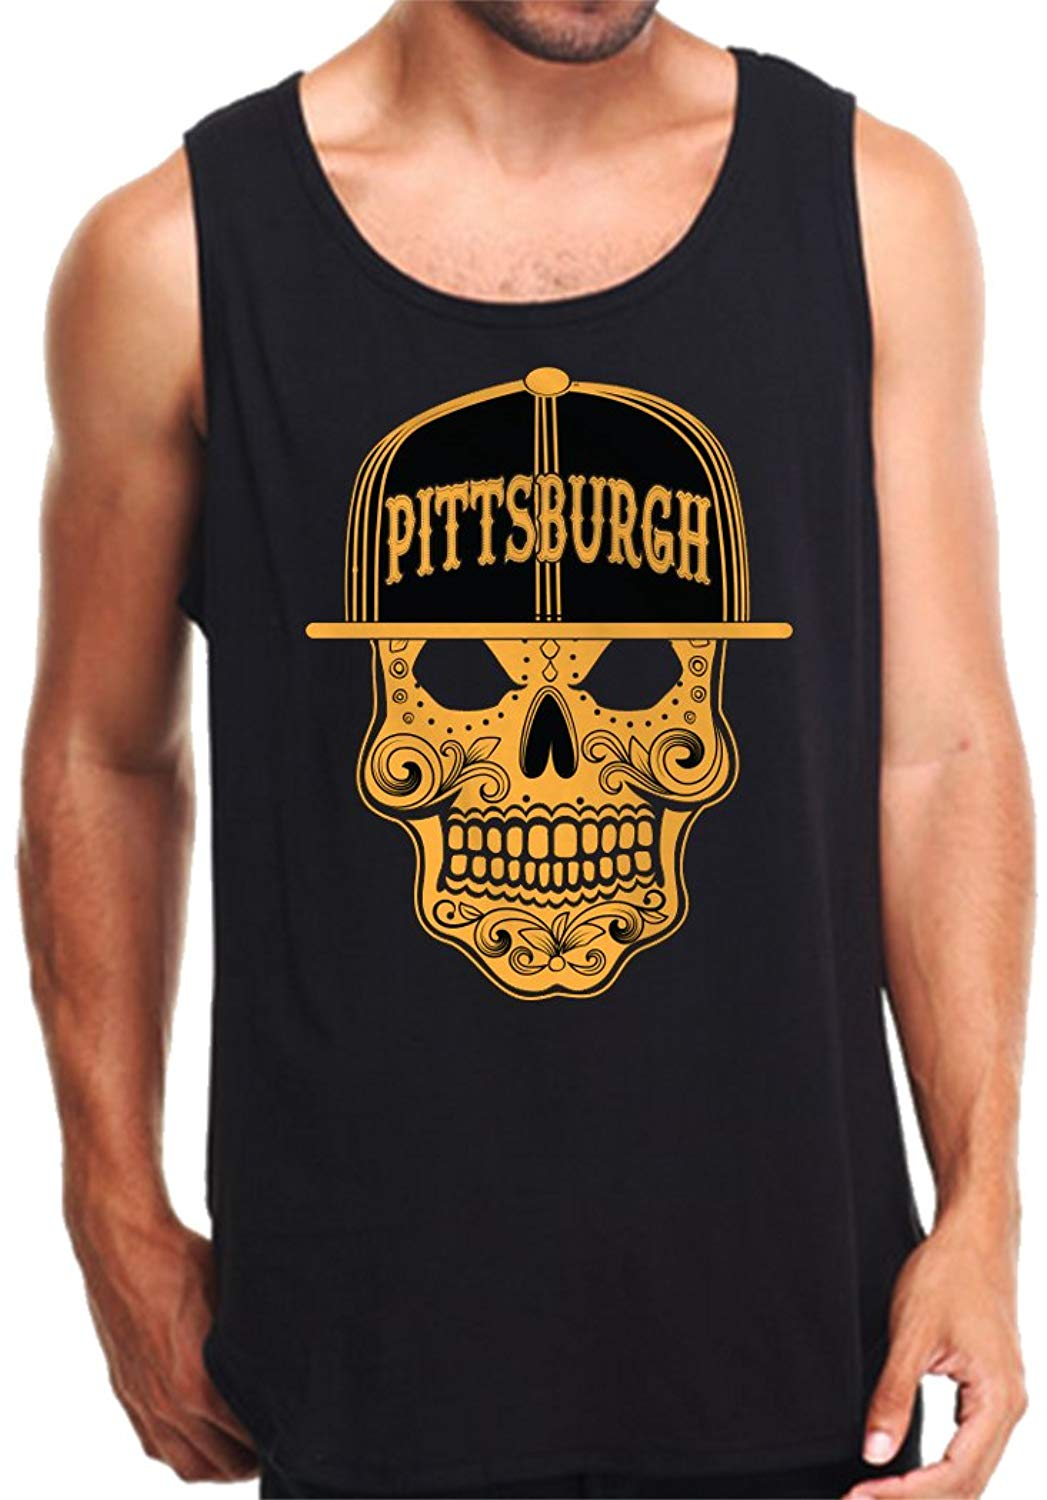 CaliDesign Men's Pittsburgh Sugar Skull Tank Top Pitt